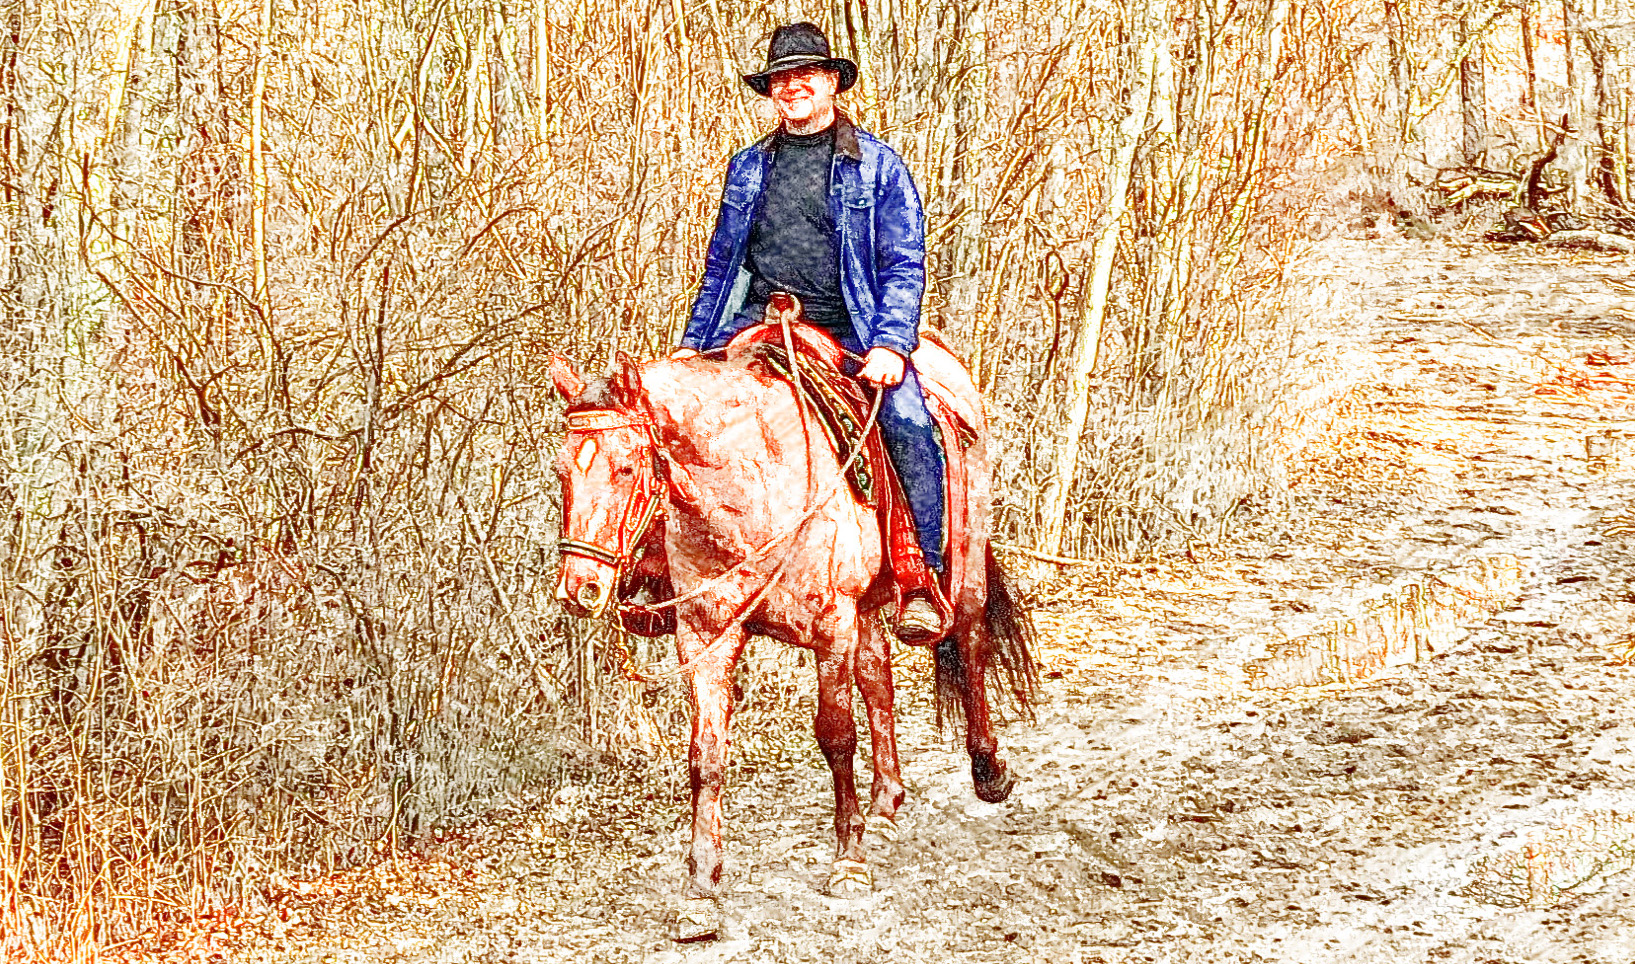 Chris riding his horse on a trail